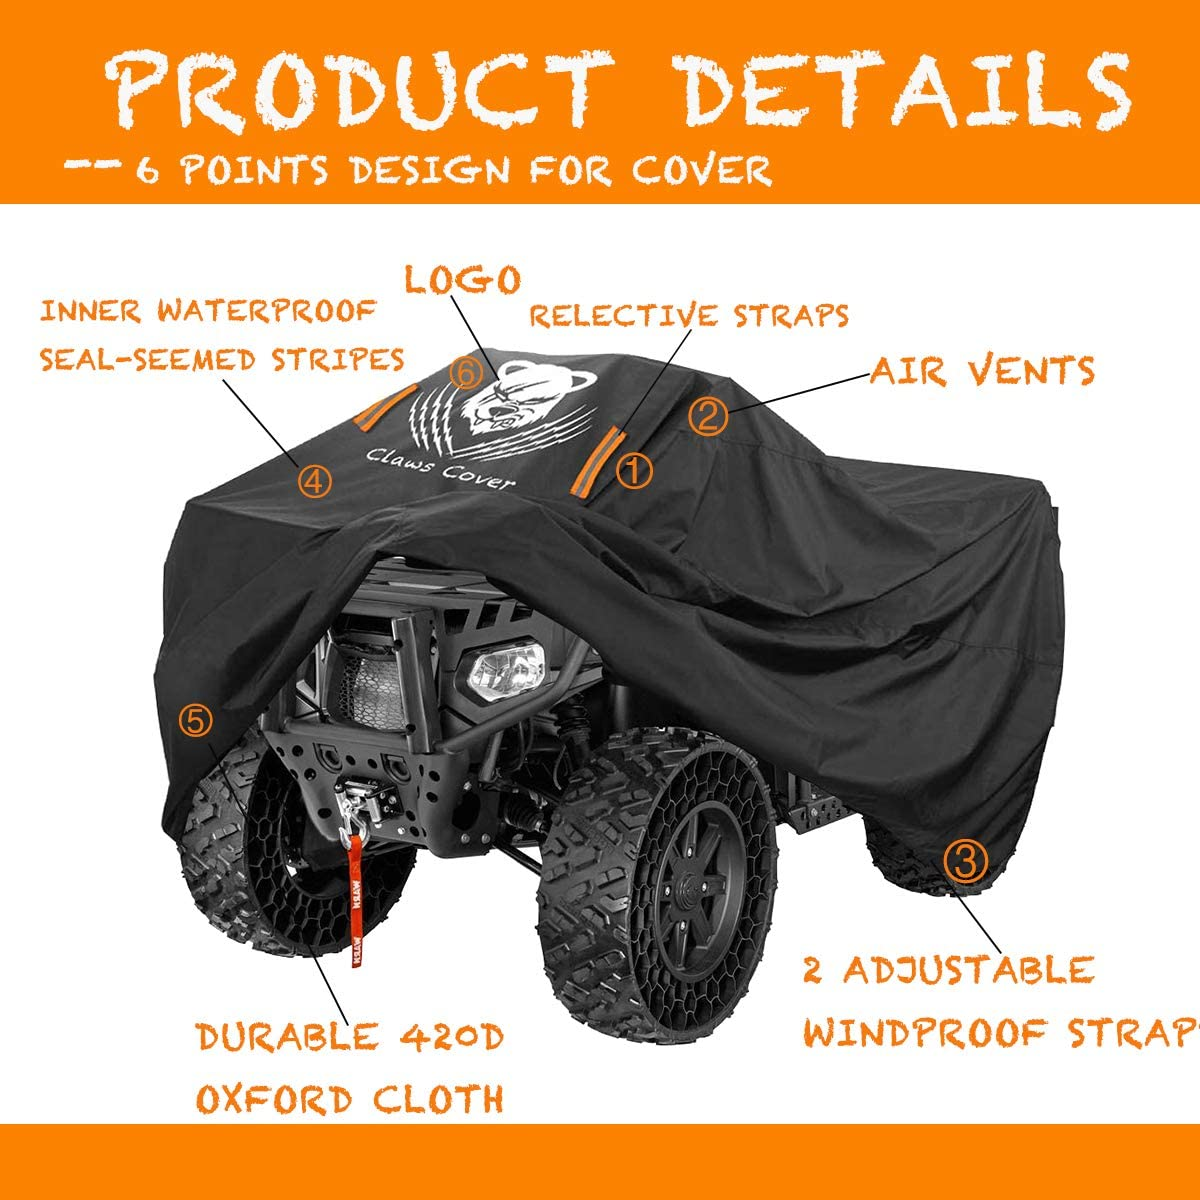 ClawsCover XL 76 Inch ATV Quad Covers Waterproof Outdoor Heavy Duty 420D Oxford Cloth Durable 4 Wheeler ATC Rain Cover Accessories All Weather UV Protection for Kawasaki Polaris Suzuki Can am